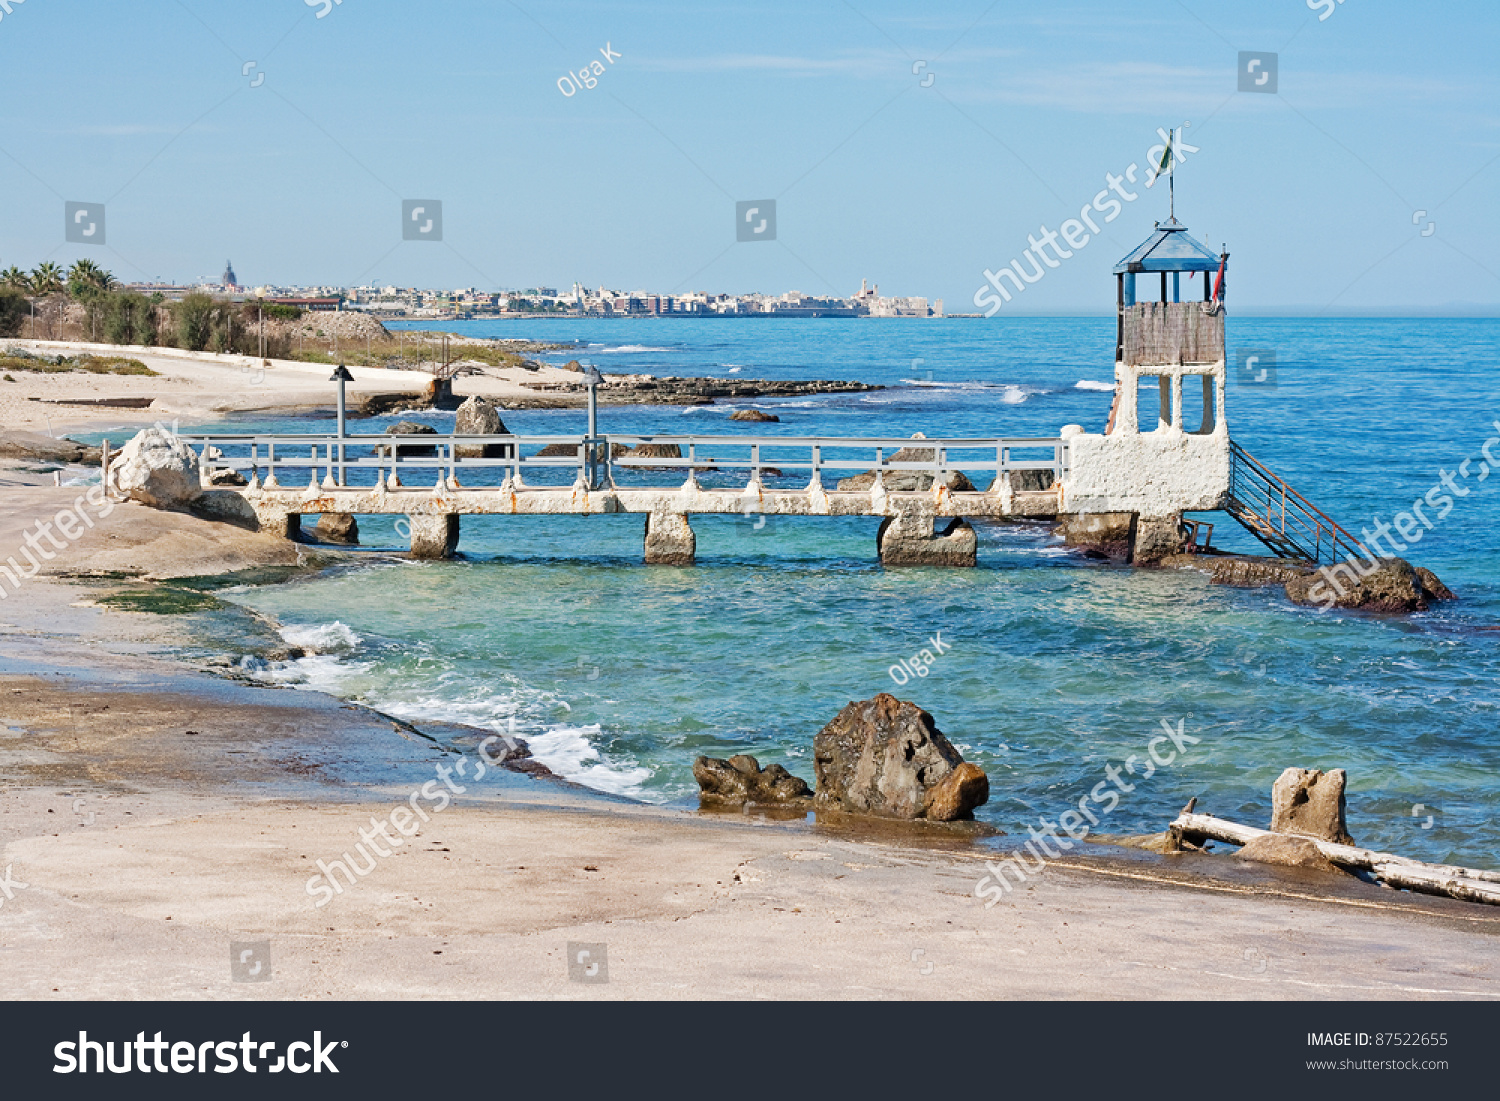 Adriatic Coast Landscape Near Bari Italy Stock Photo 87522655 - Shutterstock